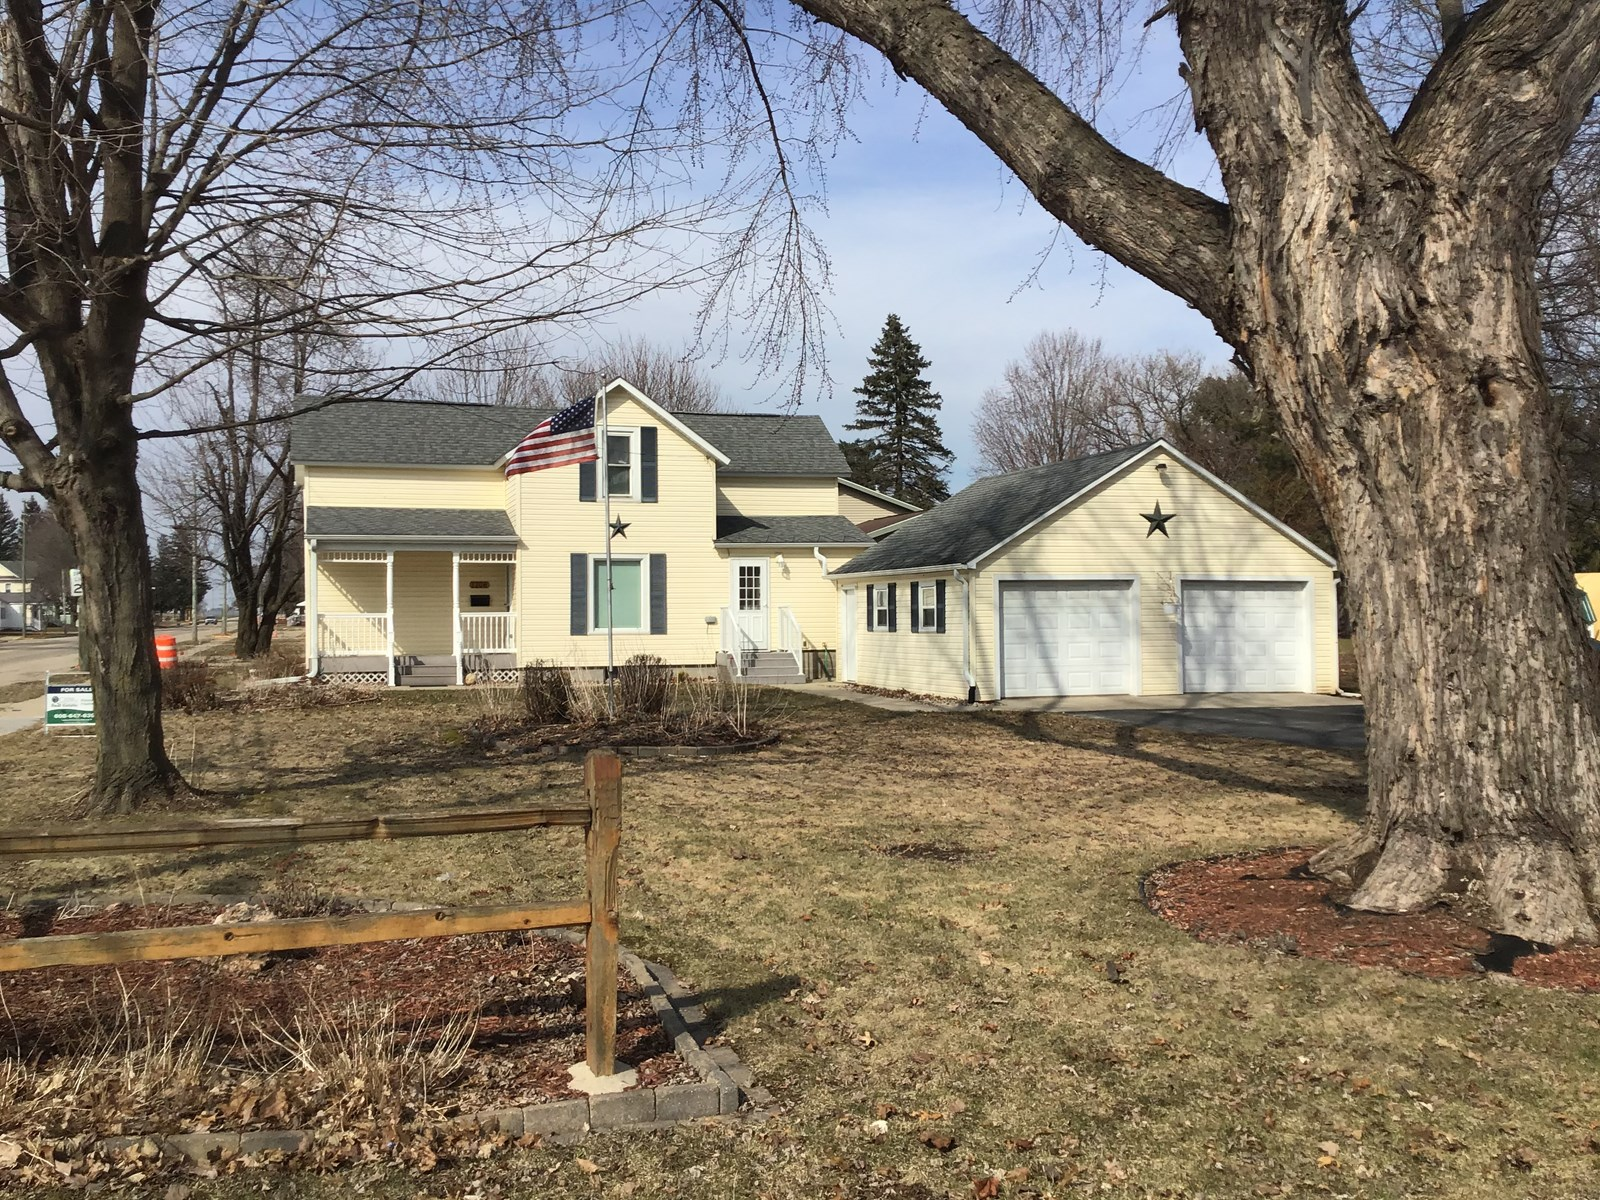 4 Bedroom Home in Juneau County WI